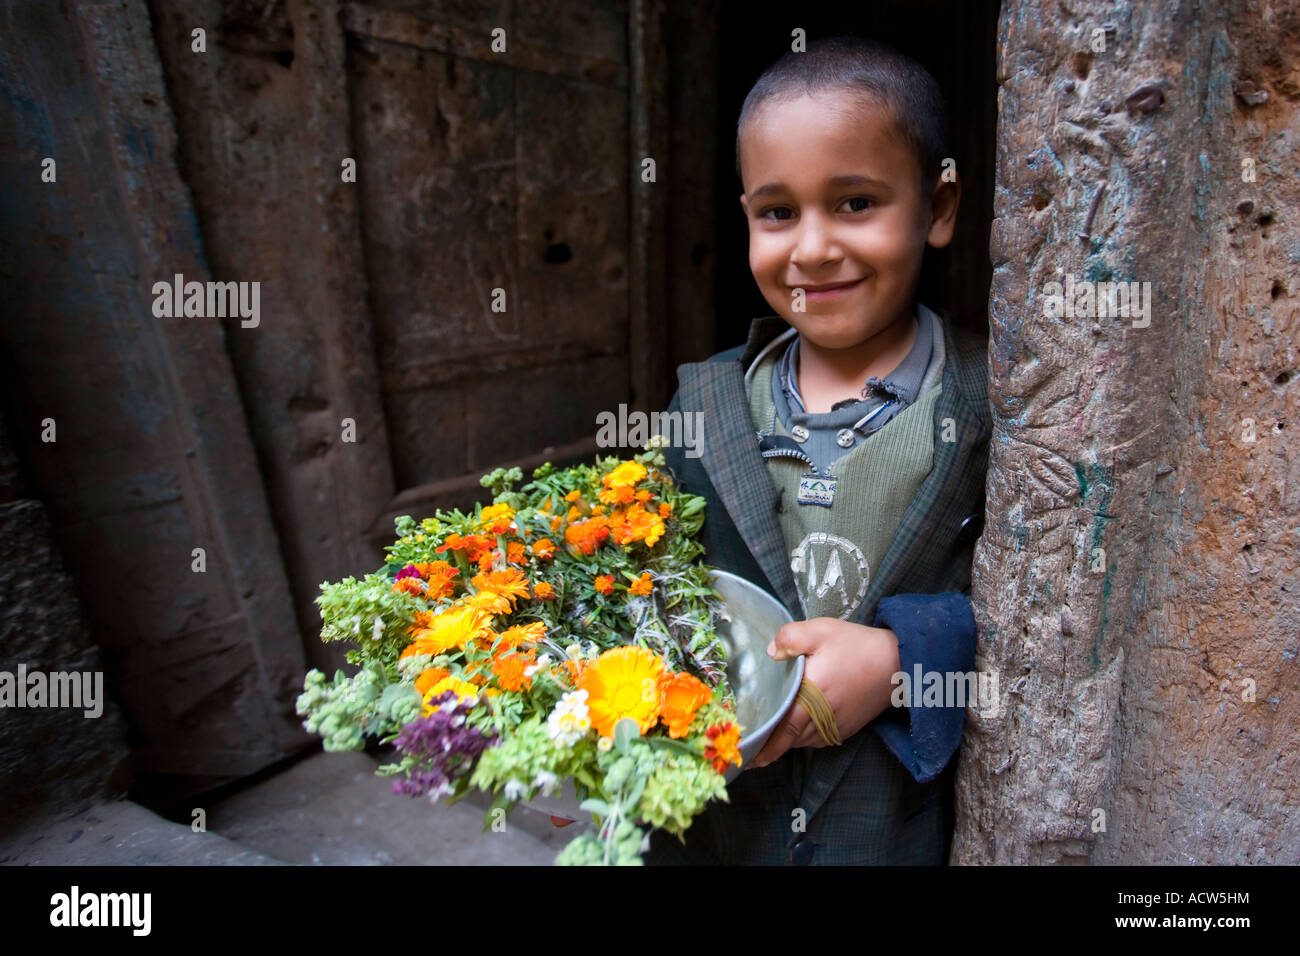 Young boy selling flowers on the streets of the village of Jibla near Taizz Yemen - Stock Image